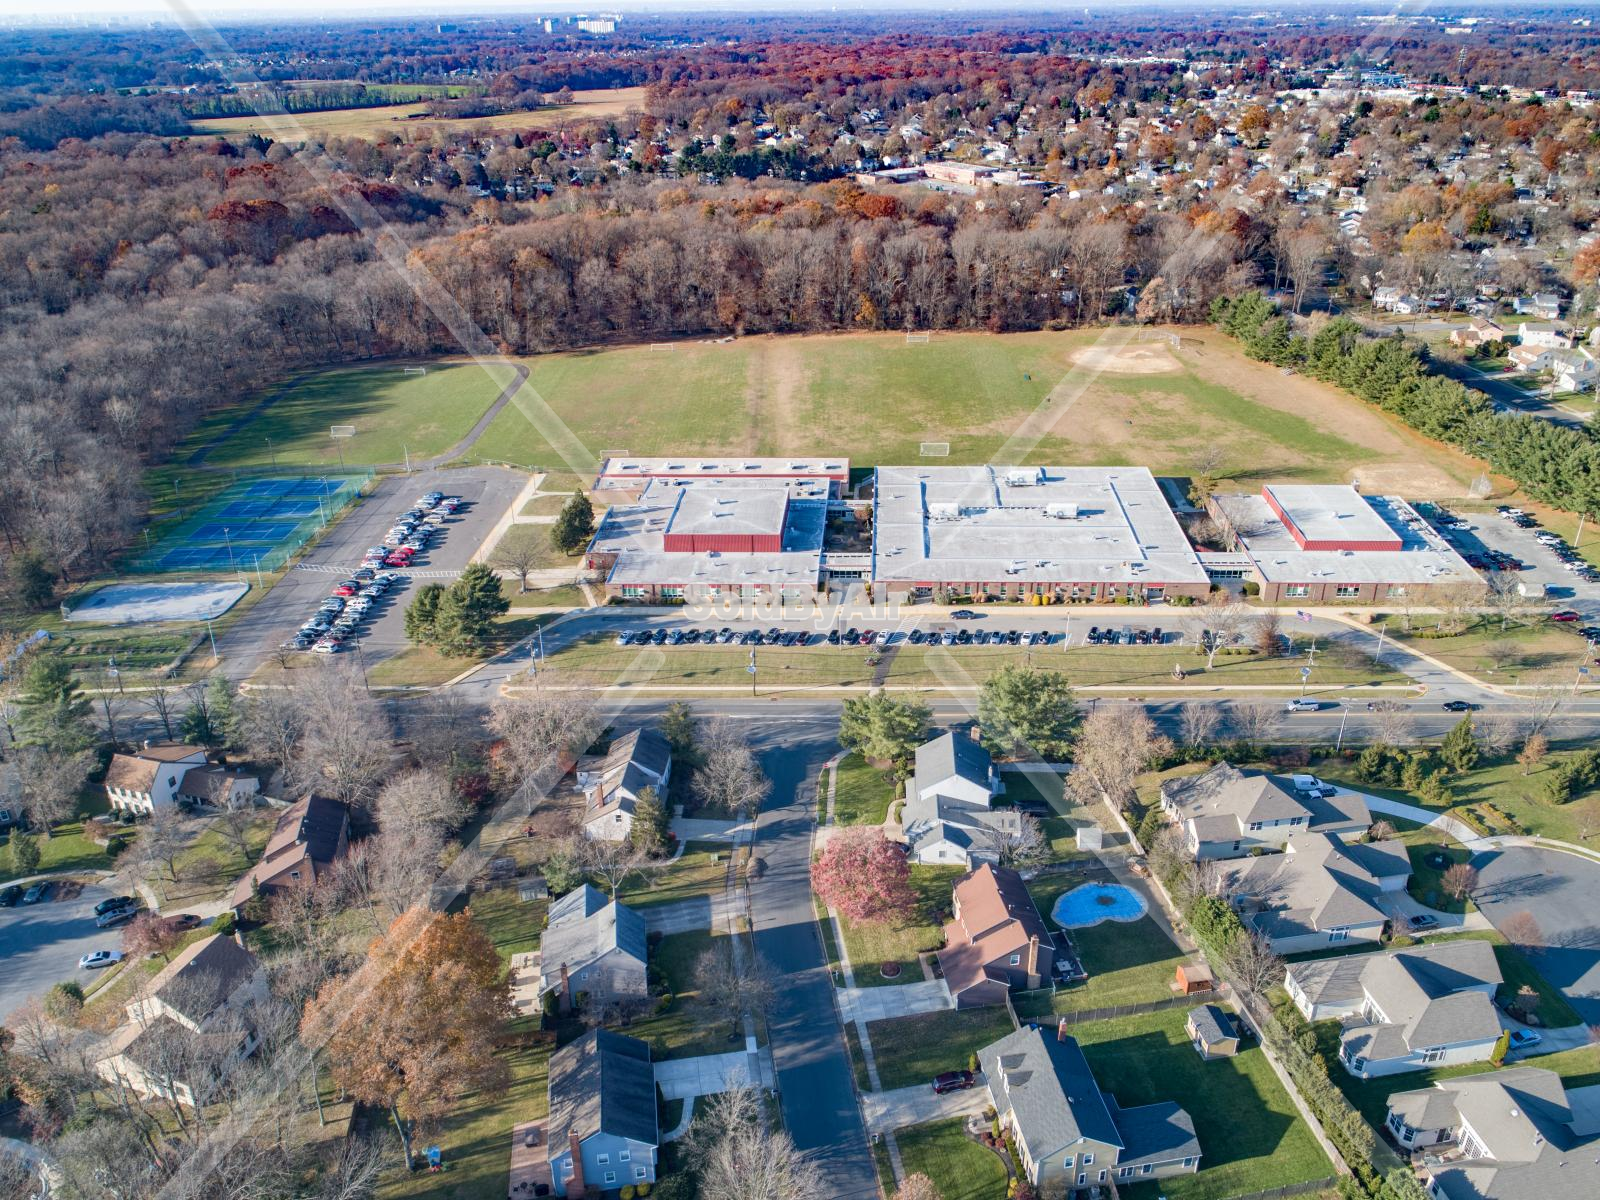 Drone Photo of Becks Middle School in Cherry Hill New Jersey